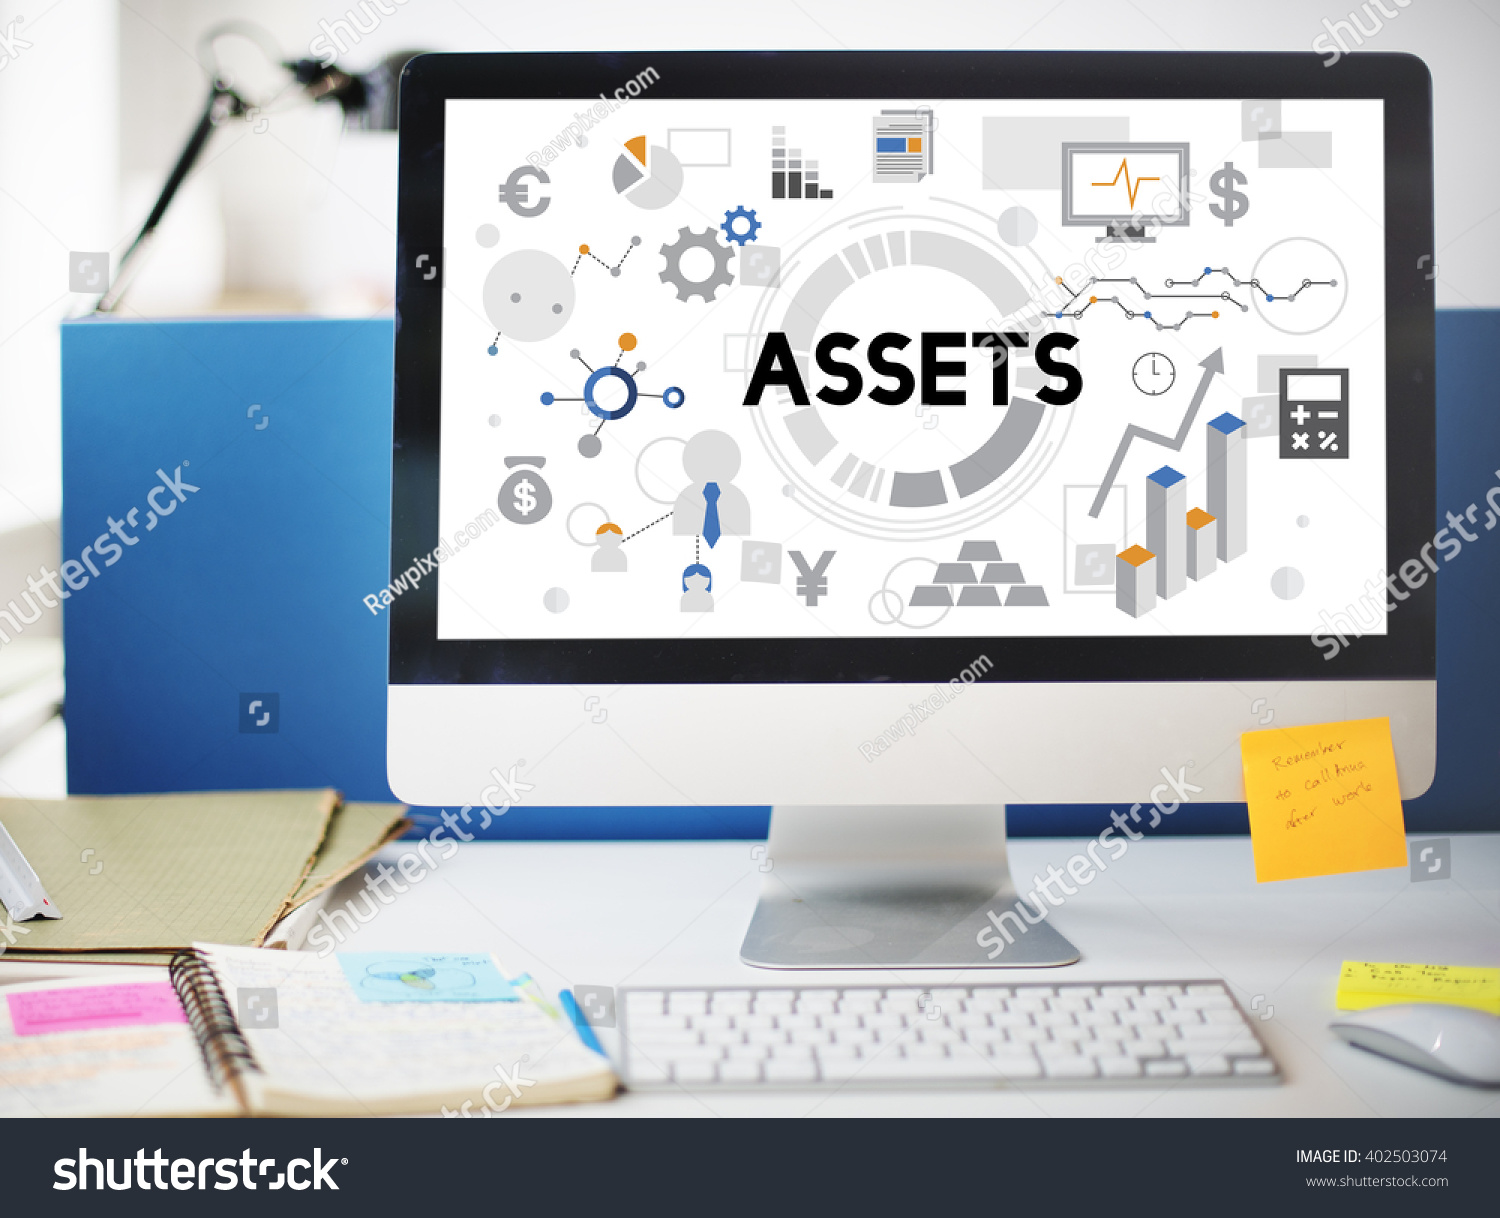 value modern management accounting system Strategic management accounting is a  the subject highlights the management accounting tools and techniques of value chain analysis and project management.